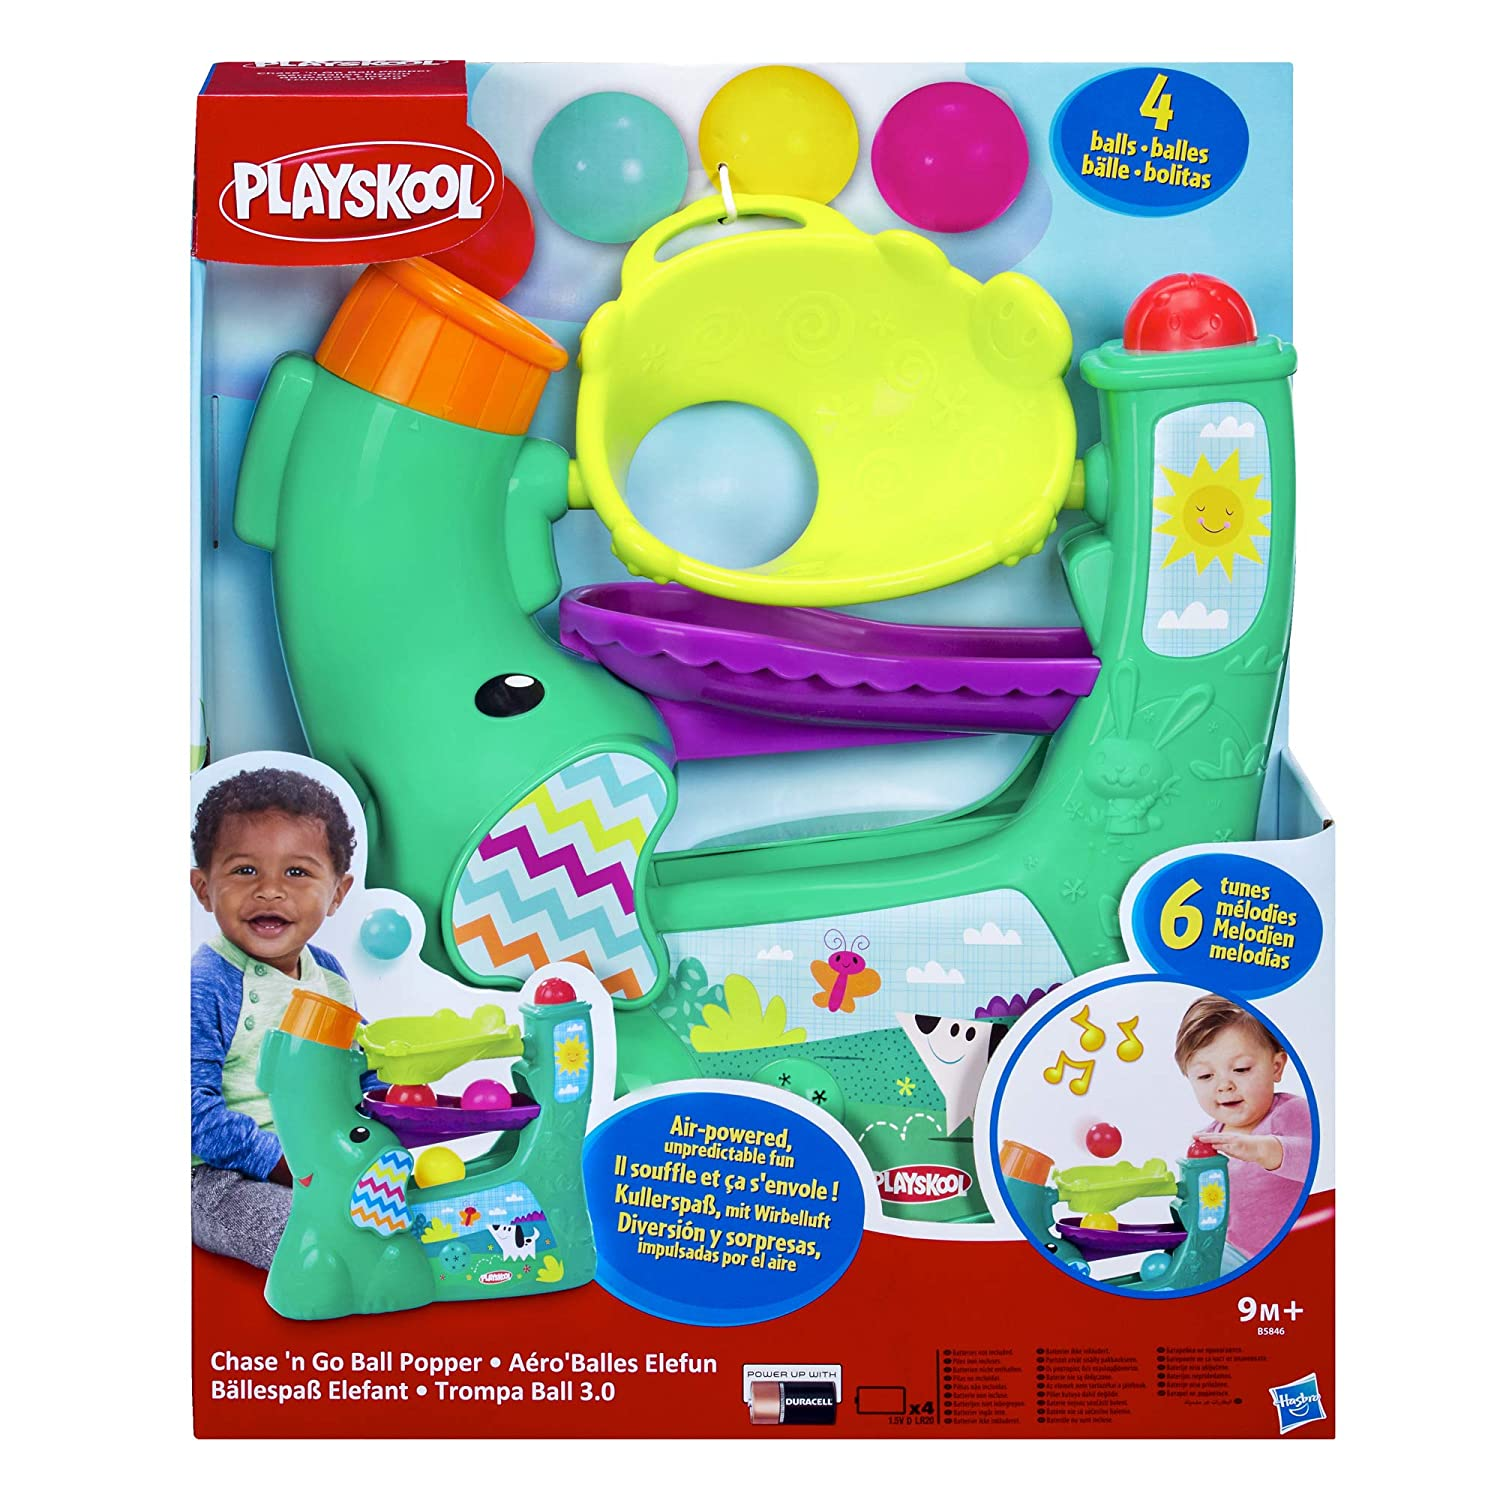 Playskool - Juguete Trompaball 3.0 (Hasbro B5846EU4): Amazon.es ...